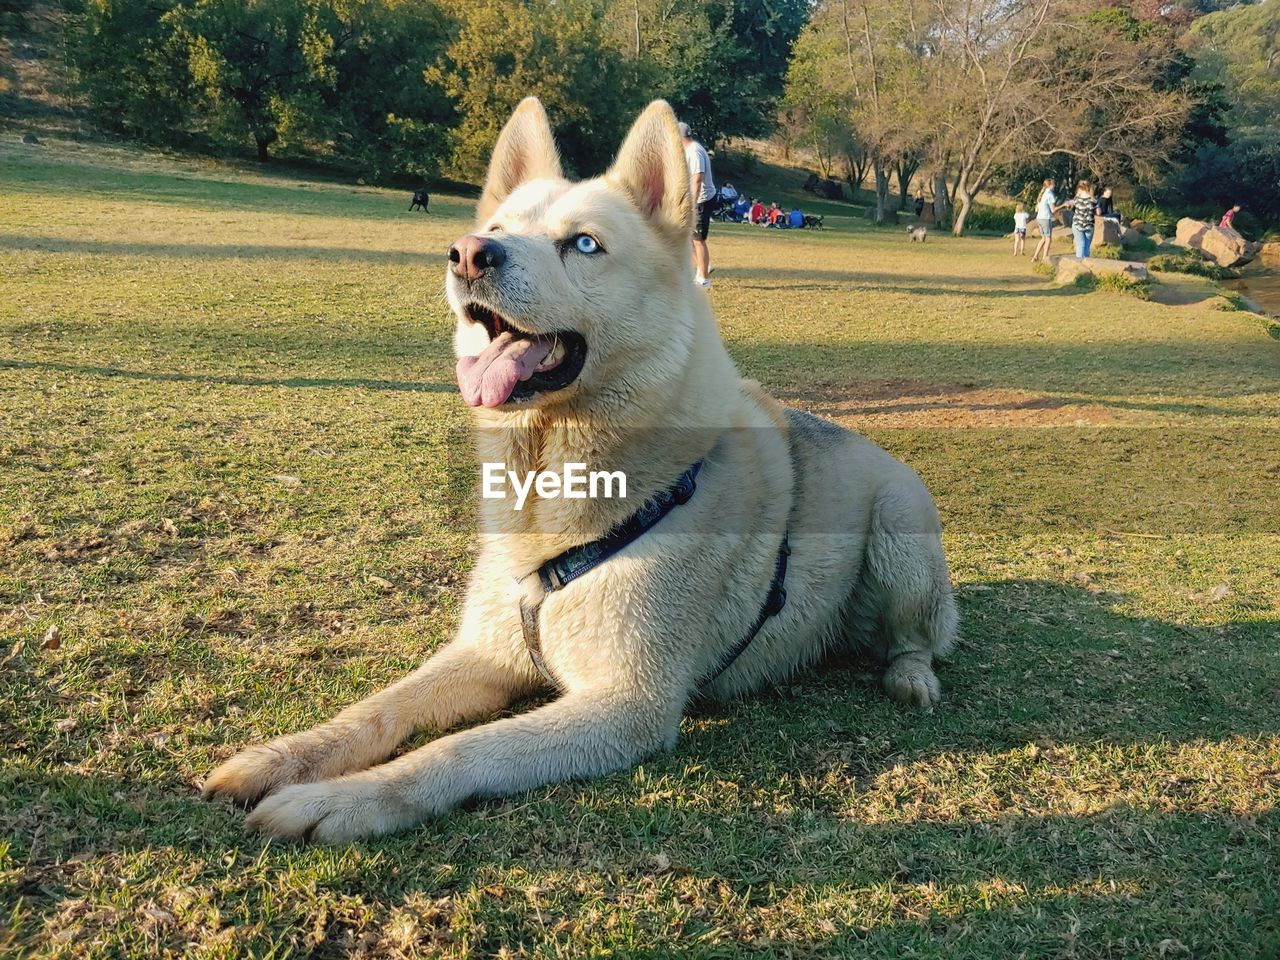 one animal, dog, domestic animals, canine, domestic, pets, animal, mammal, plant, animal themes, grass, vertebrate, nature, field, land, relaxation, day, sunlight, no people, park, mouth open, purebred dog